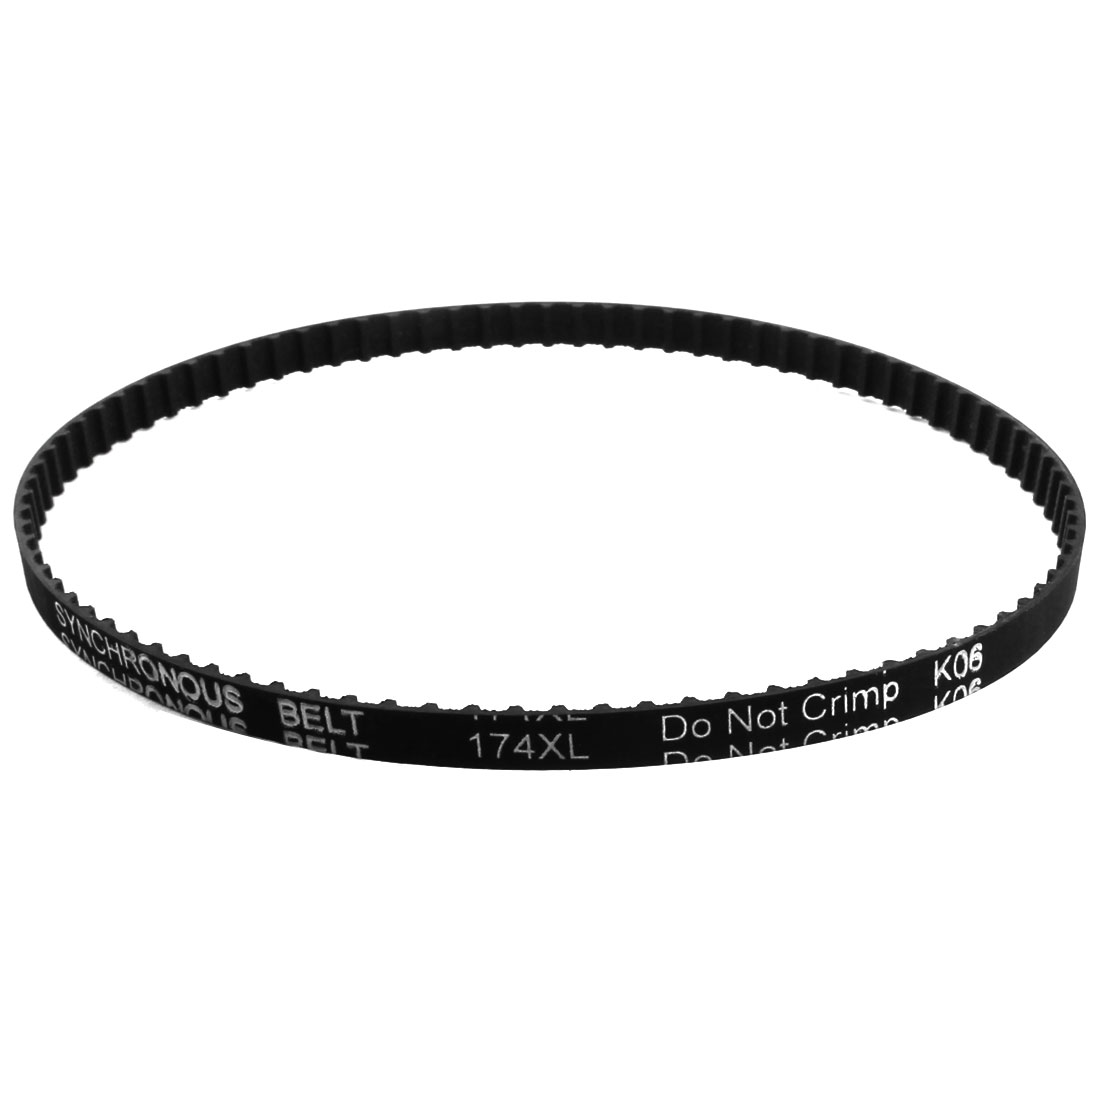 "XL-174 17.4"" Girth 5.08mm Pitch 87-Teeth 7.9mm Width Black Rubber Single Side Synchronous Timing Belt"